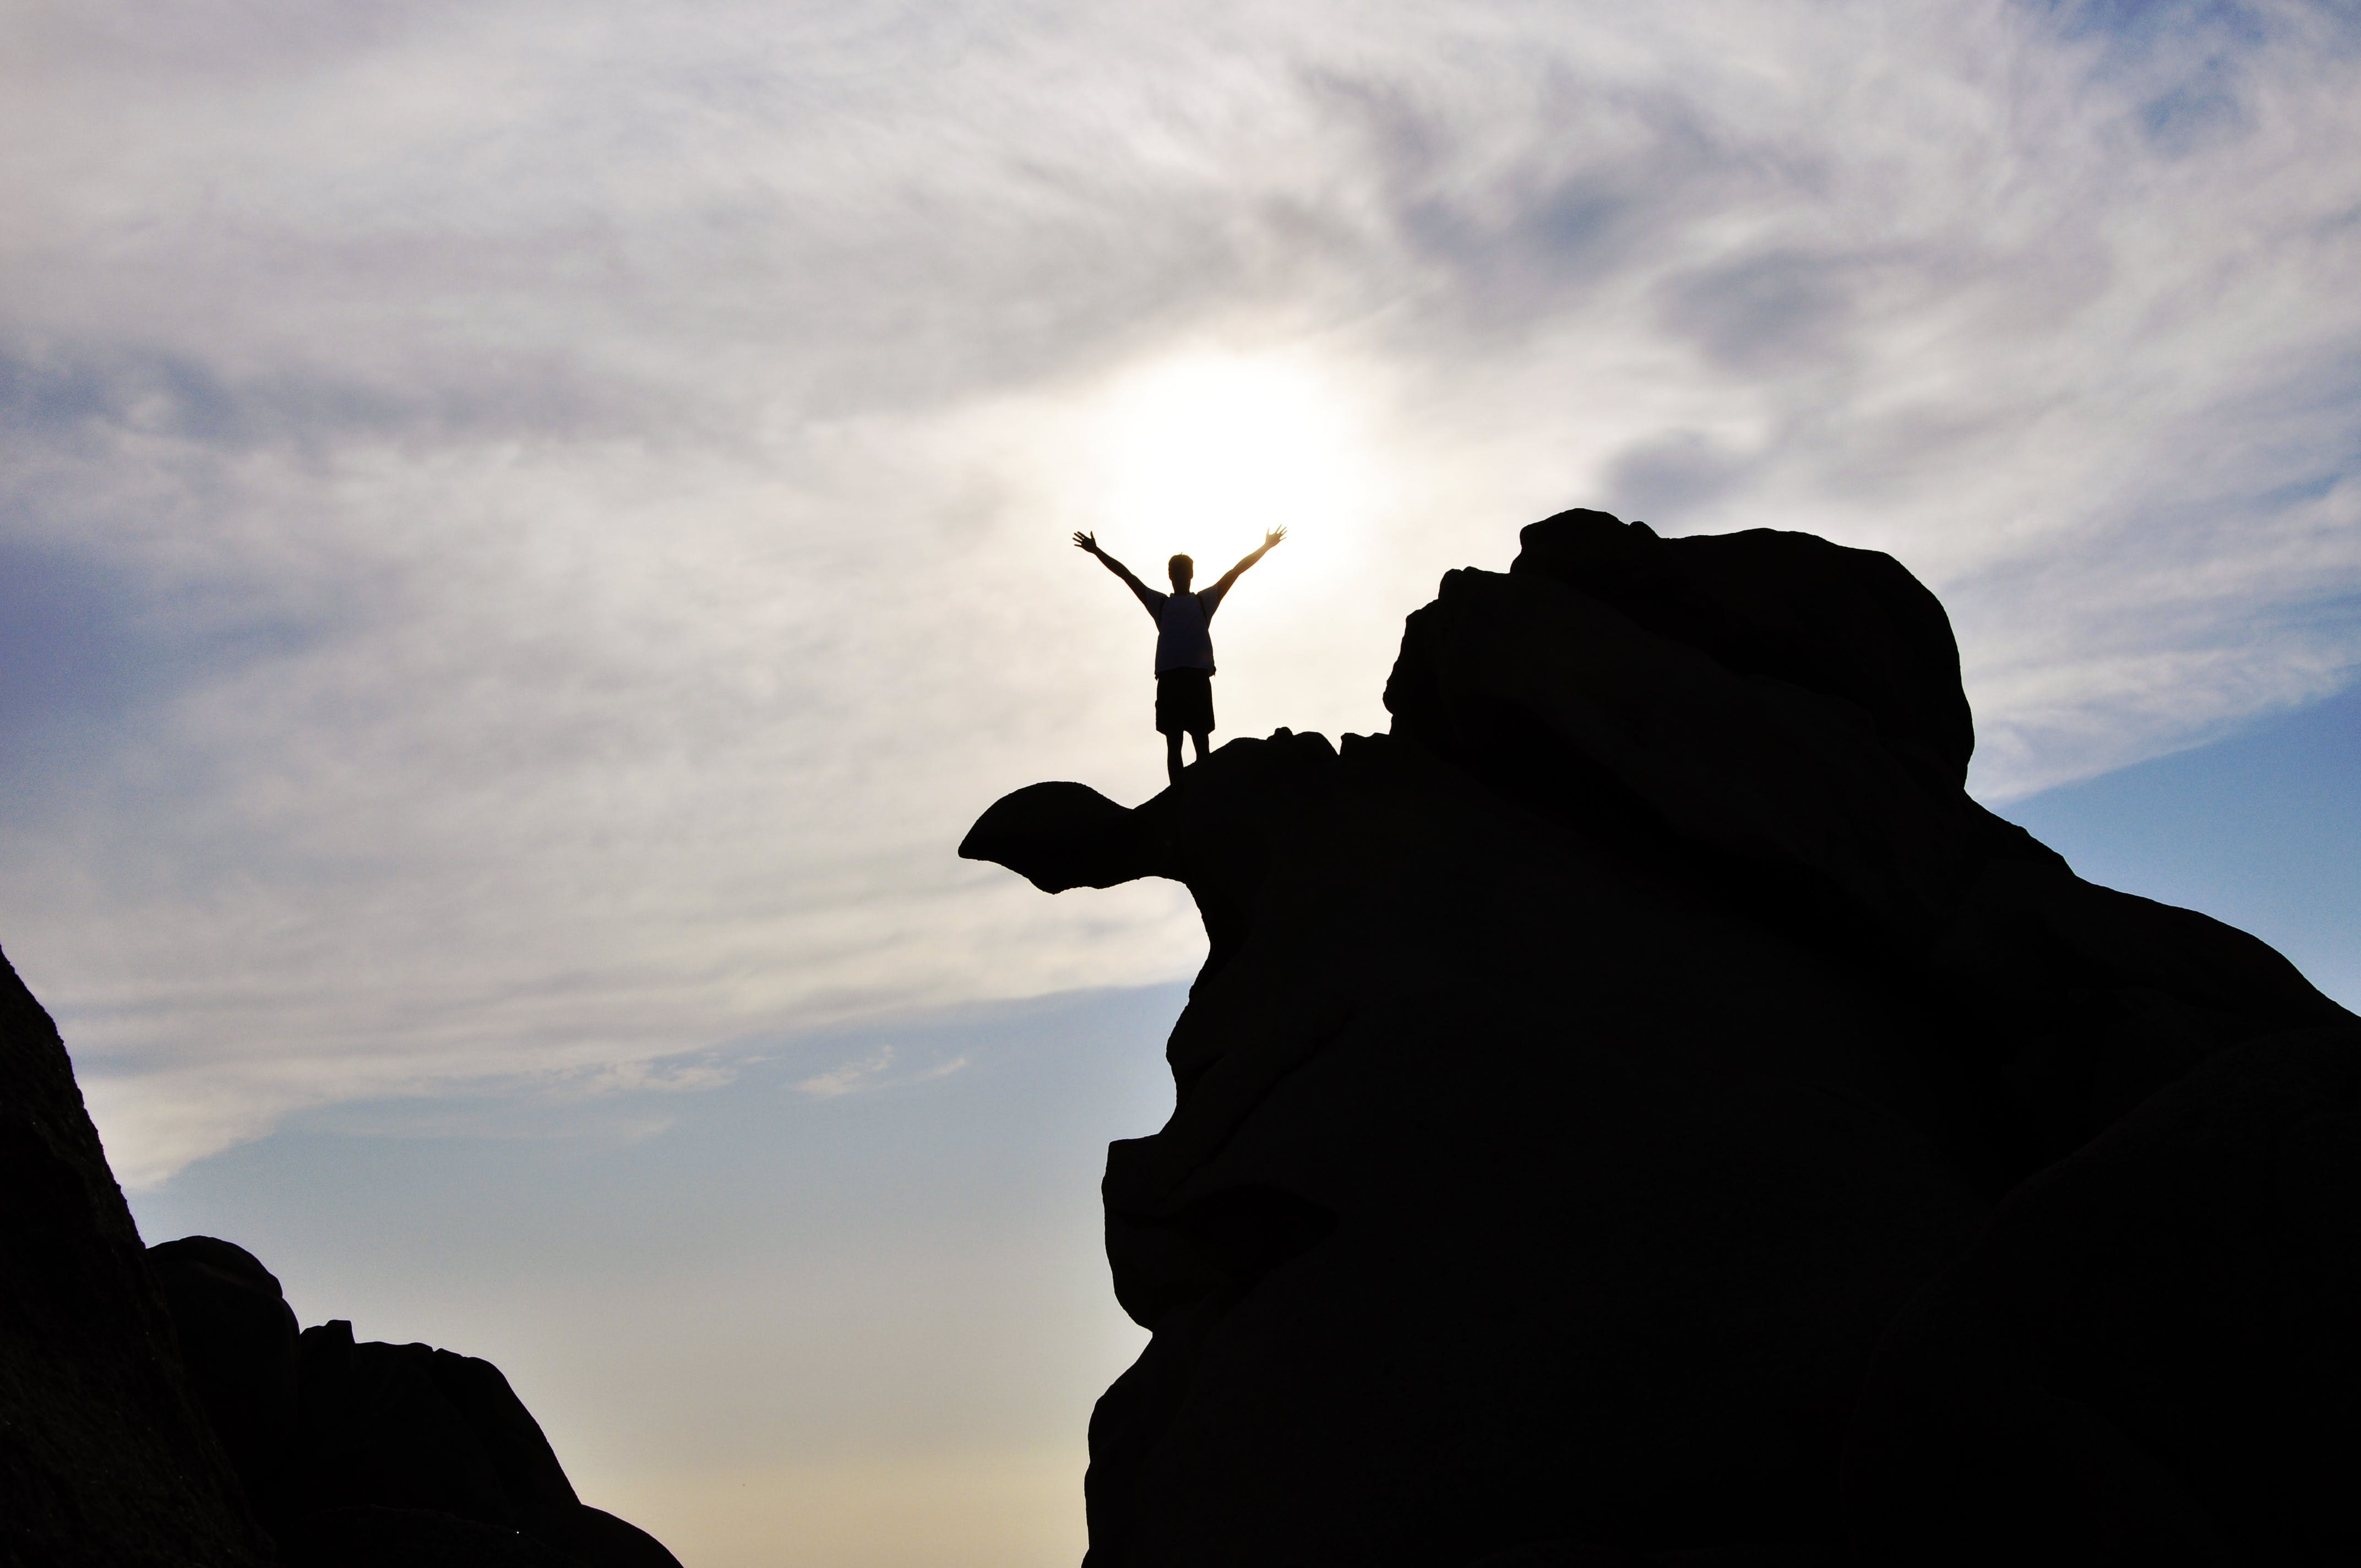 Silhouette Photography of Person Standing on Rock